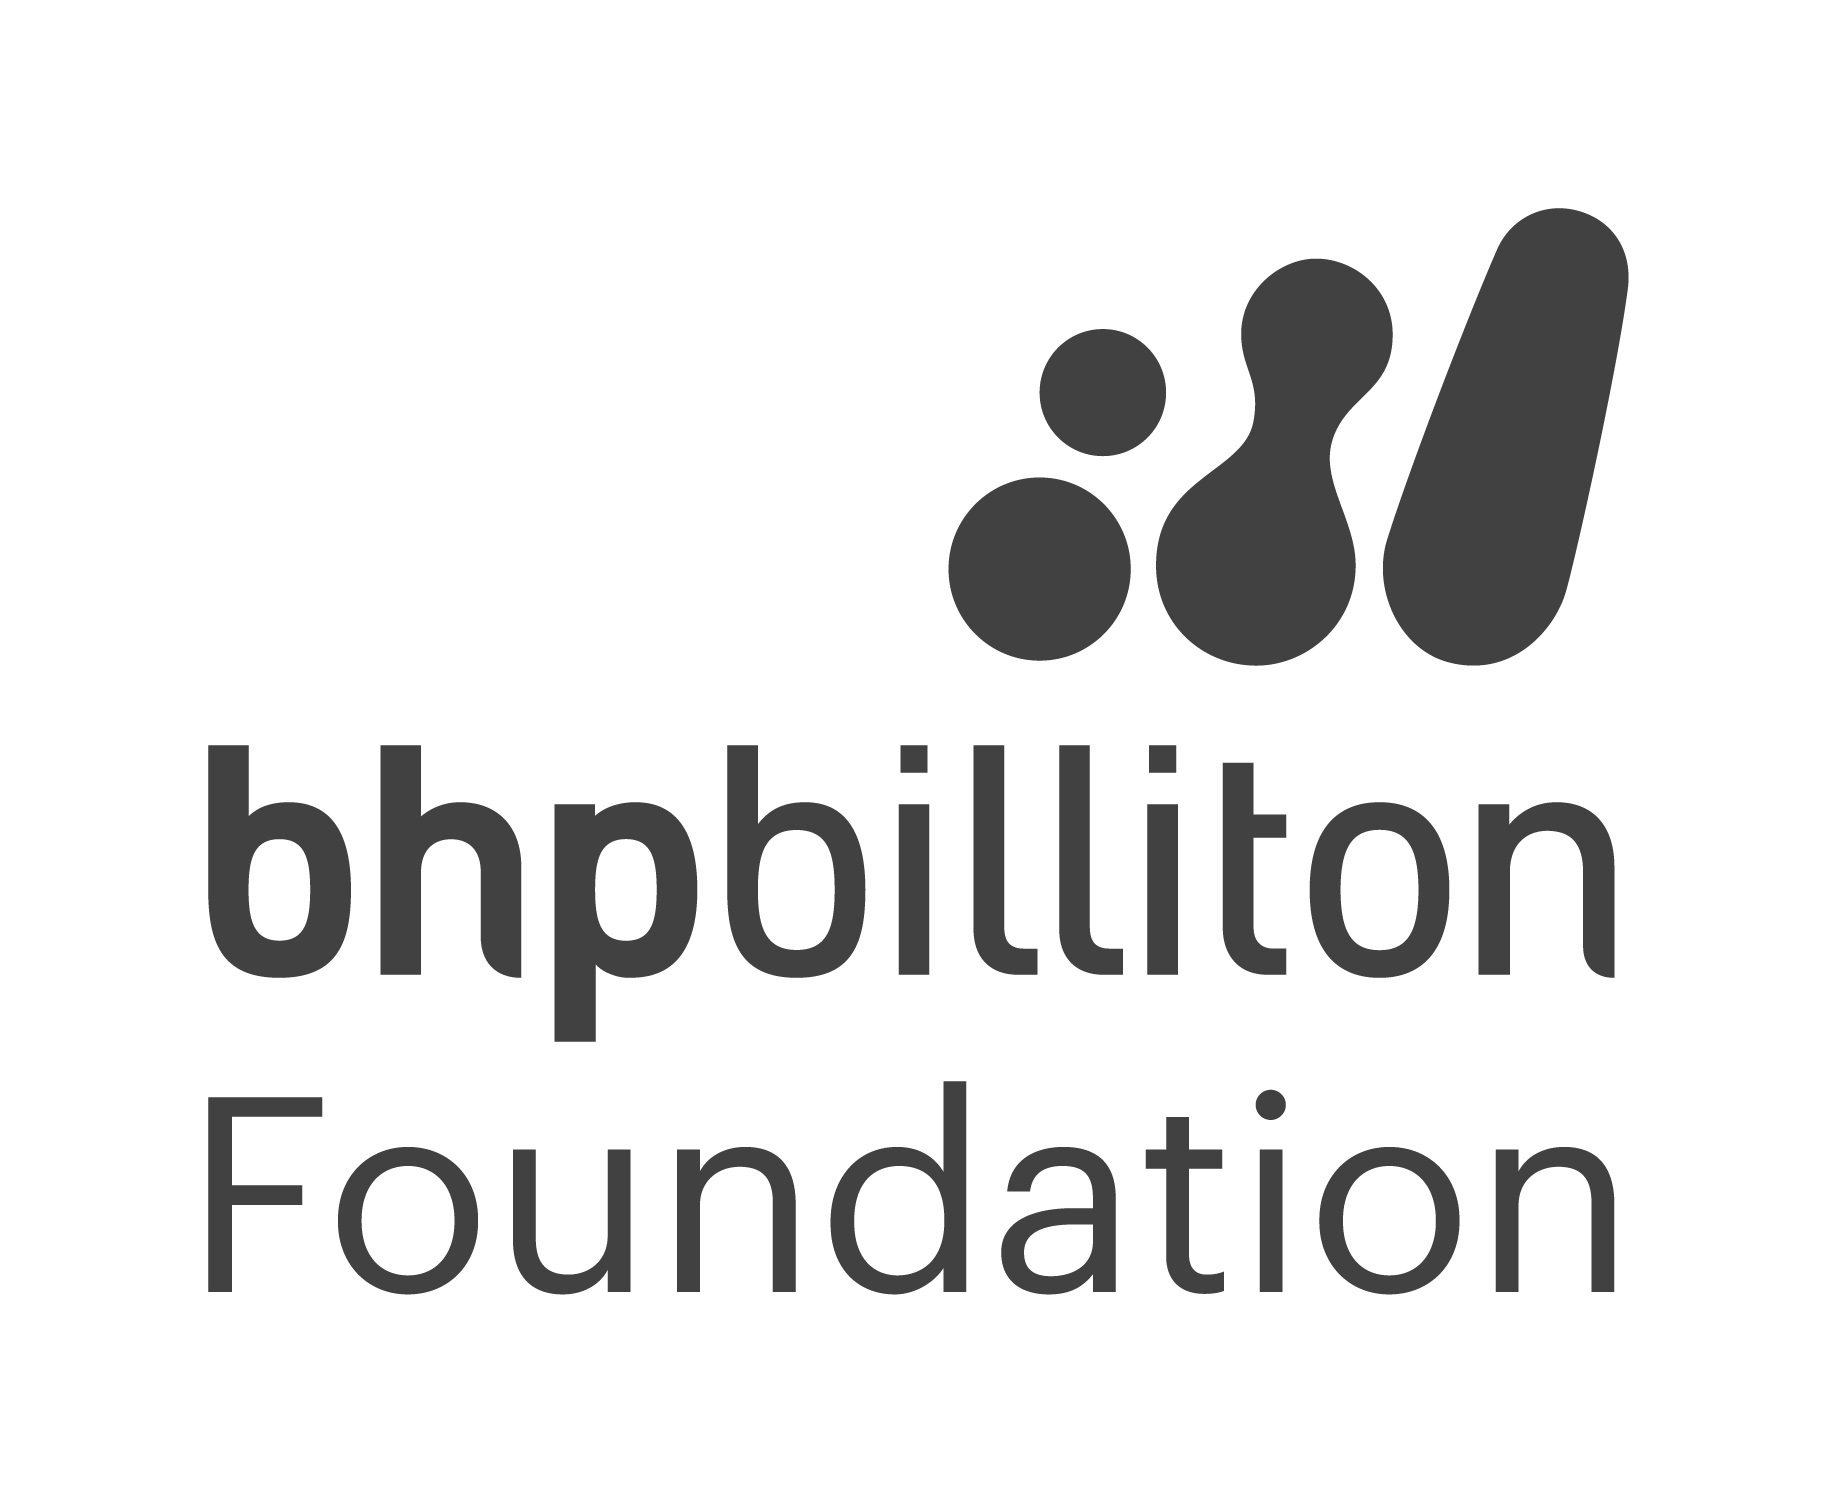 BHPB7649_FoundationLogo_COLOR_02 - BW copy.jpg